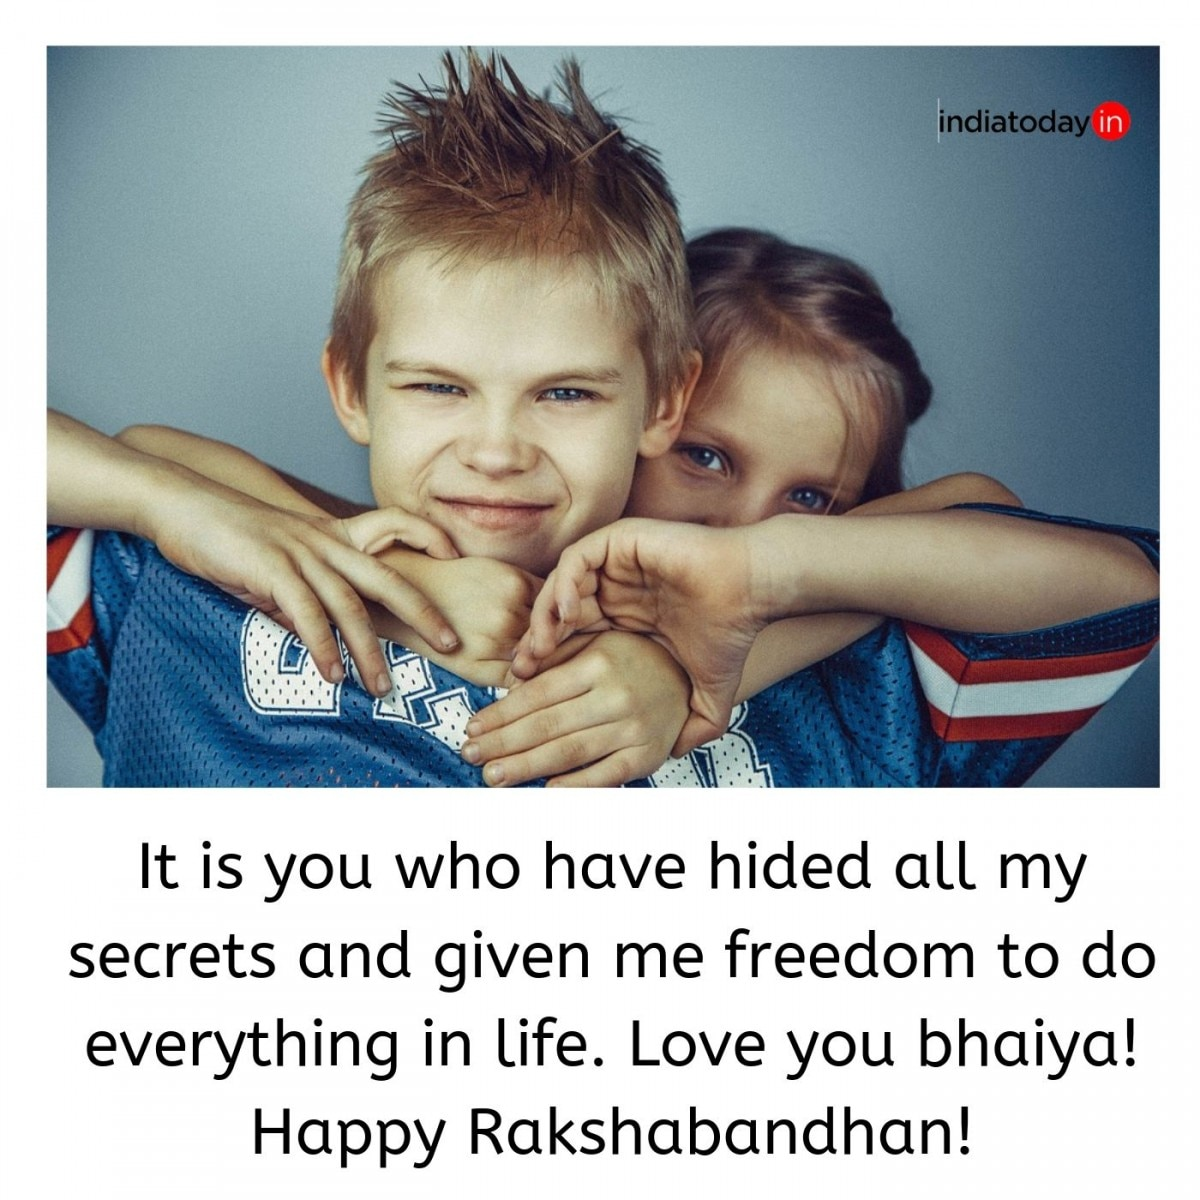 Happy Raksha Bandhan: Unique picture quotes and messages for